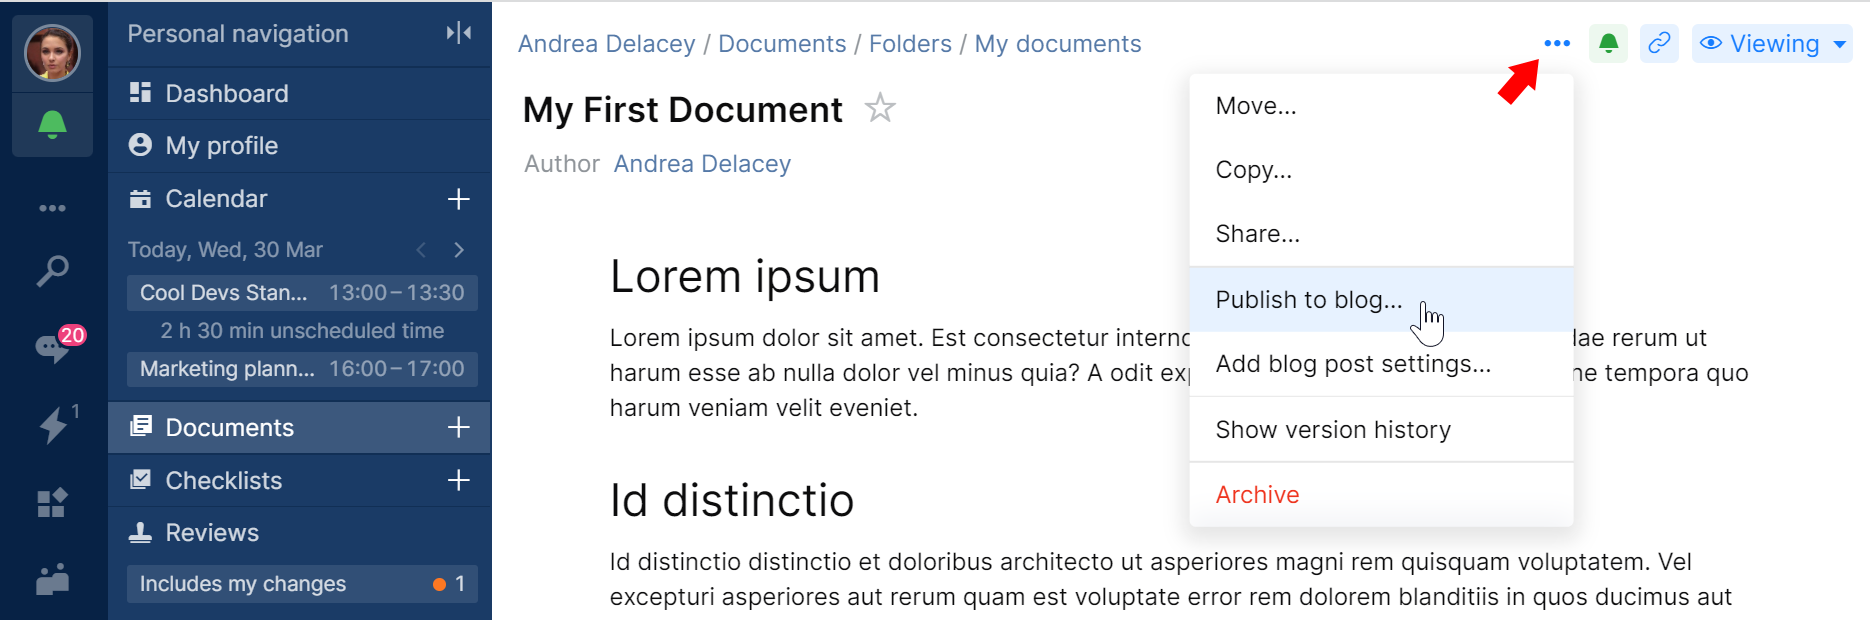 publishToBlogFromMyDocuments.png